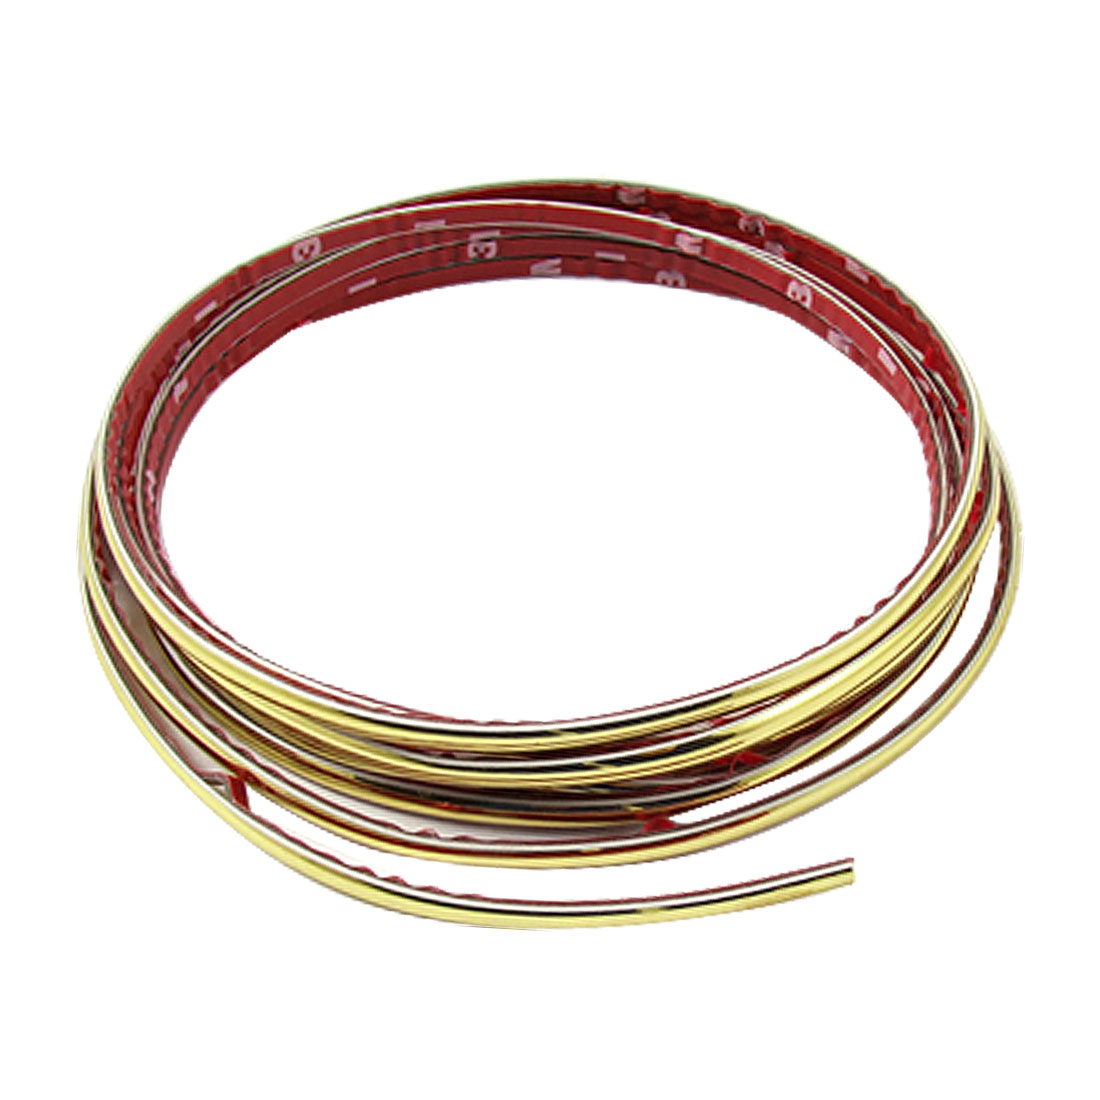 Gold Tone 3 Meters Flexible Adhesive Backing Car Vehicle Moulding Trim Strip